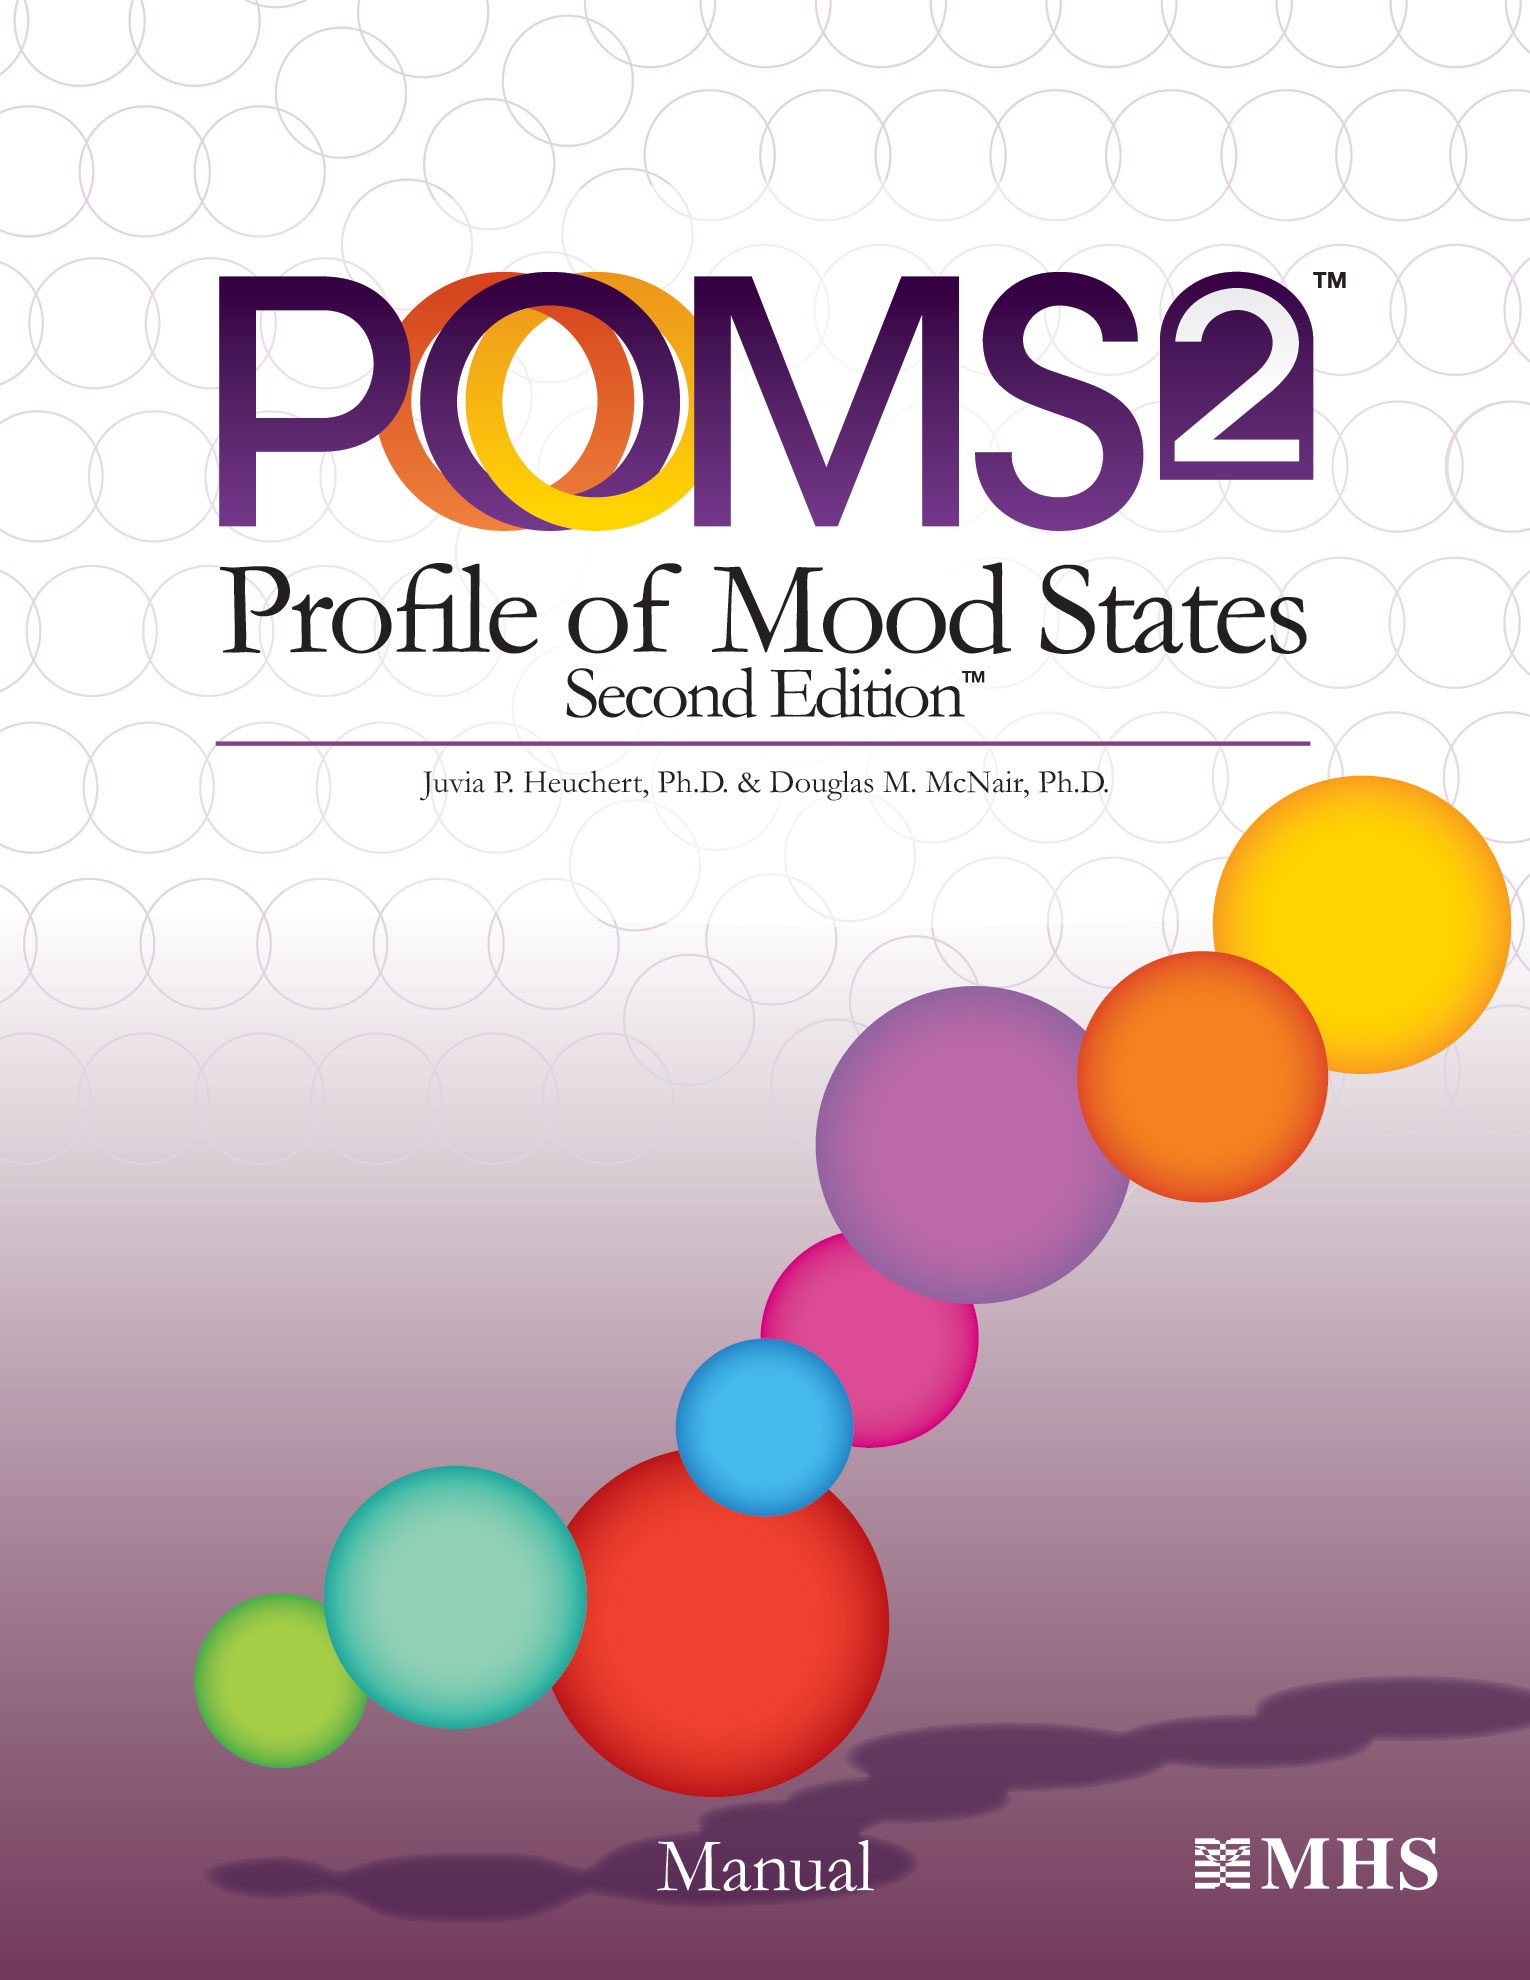 POMS2 - Profile of Mood States 2nd Edition